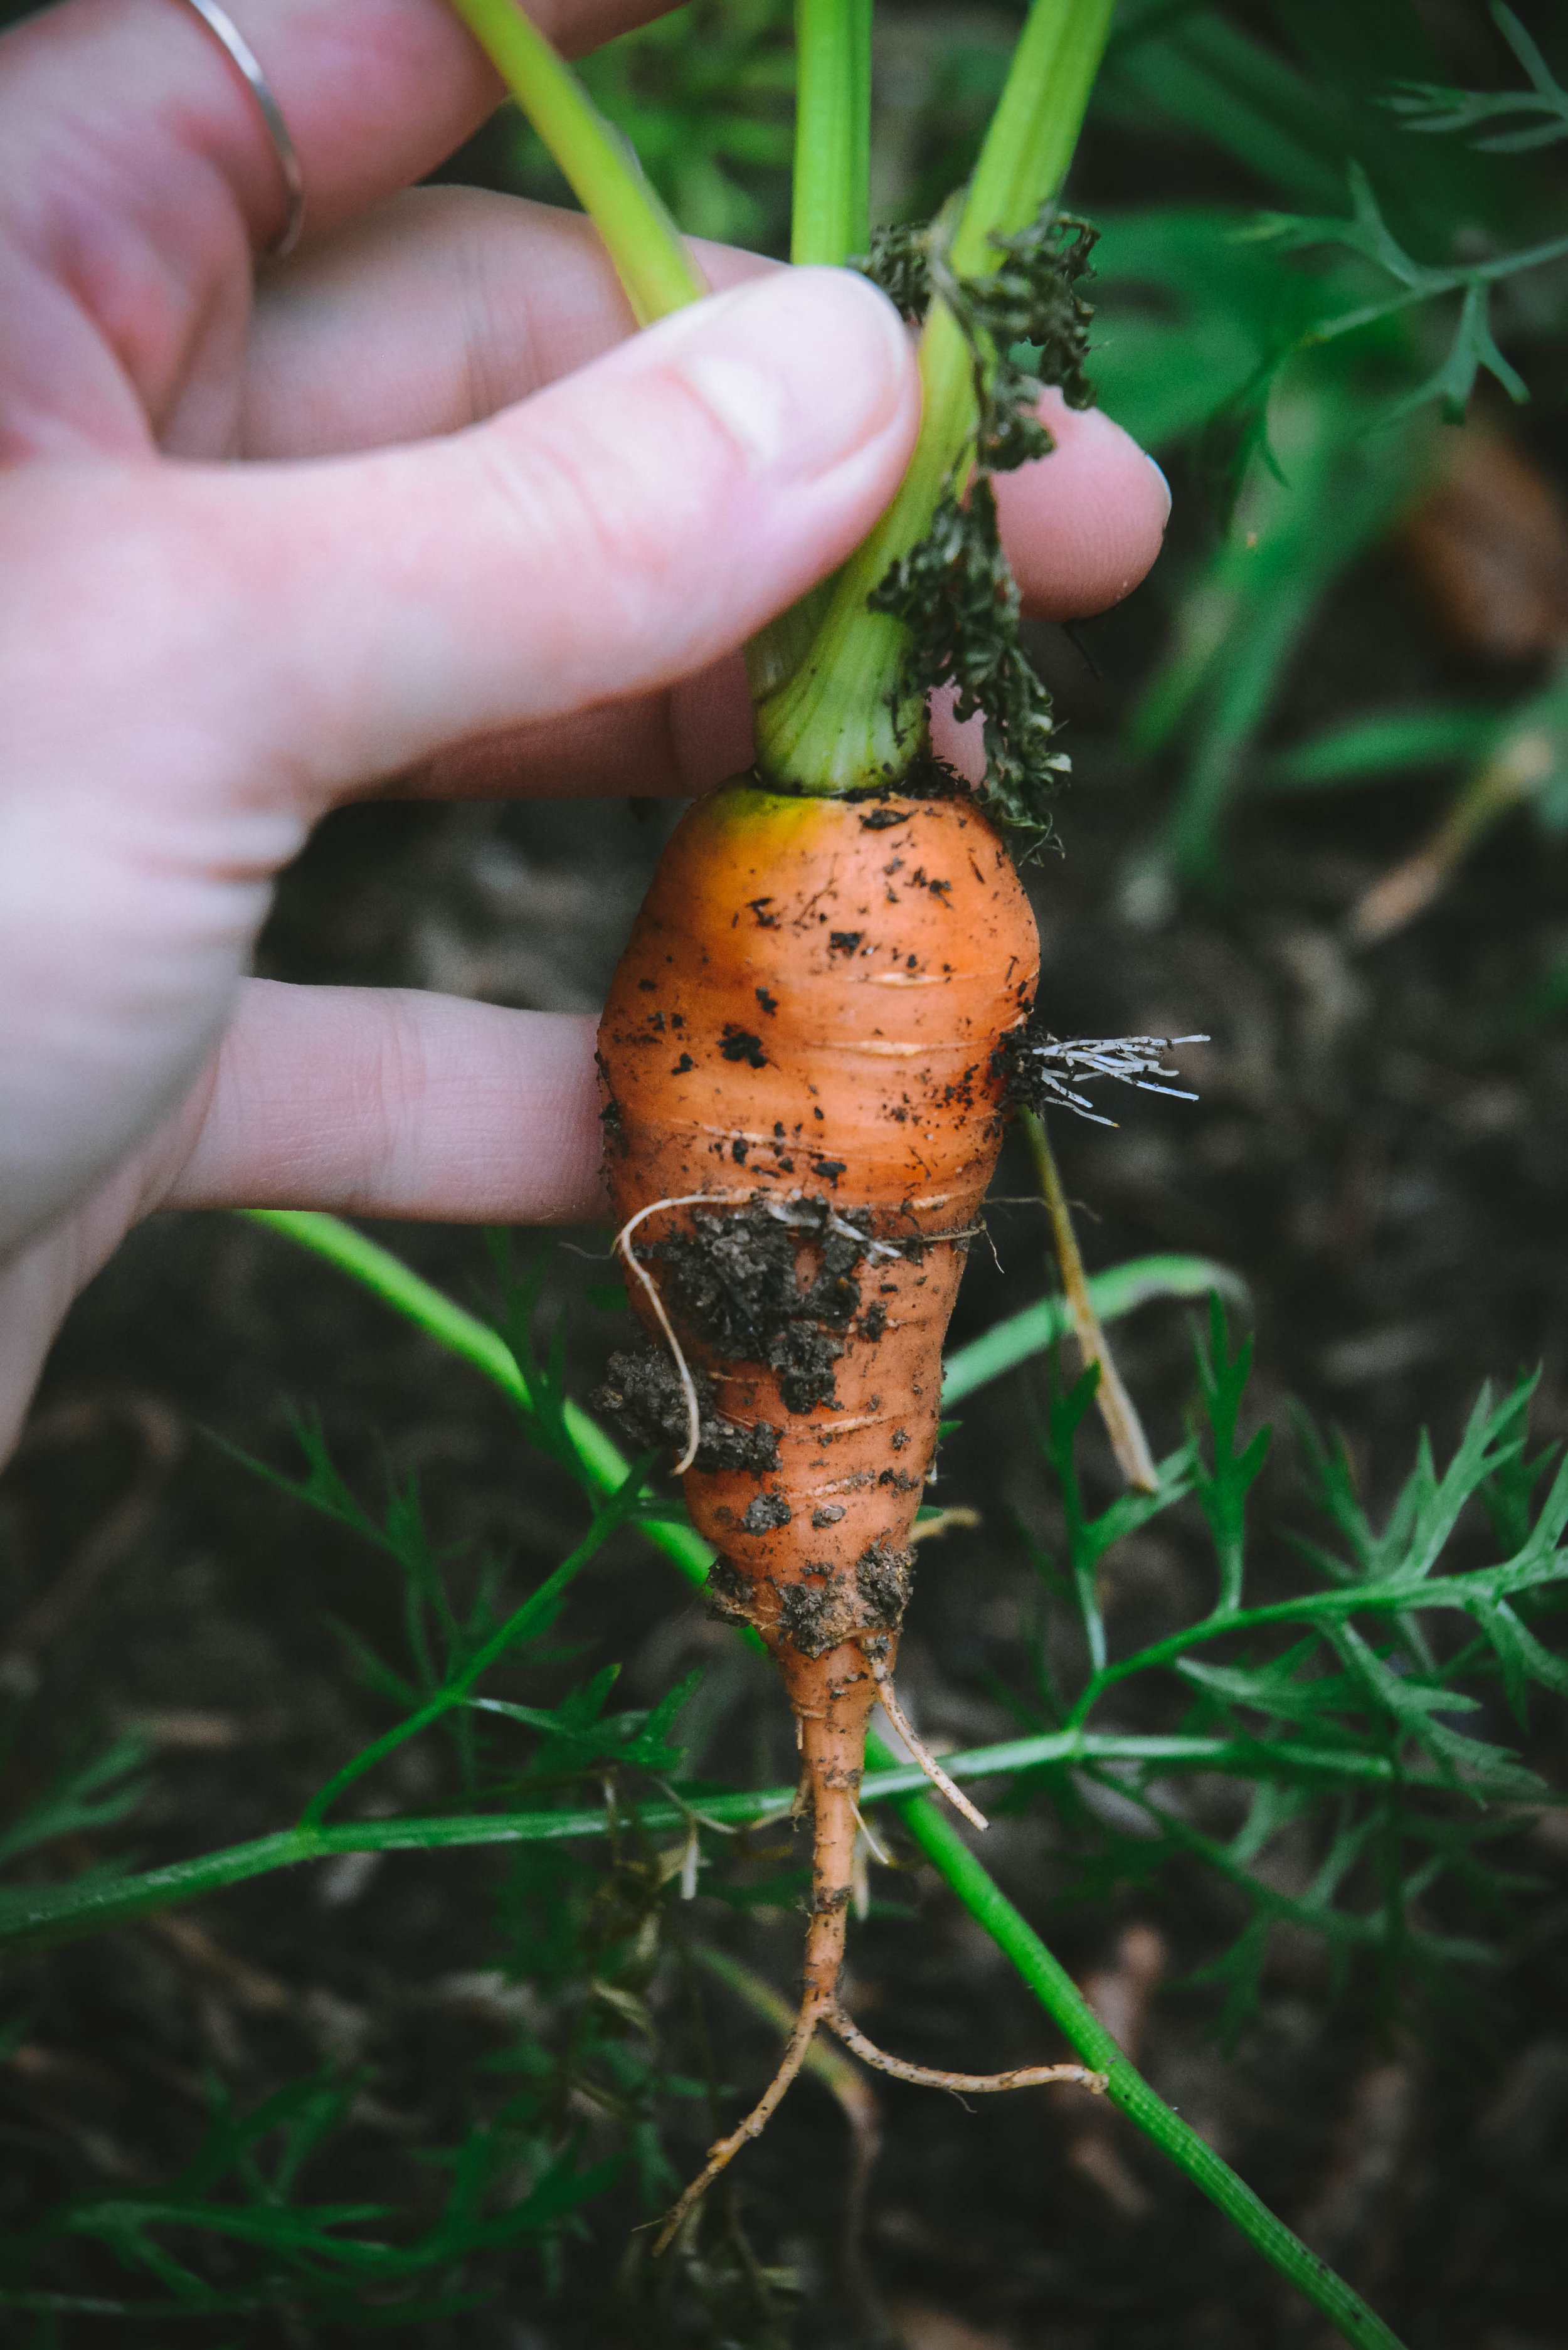 Carrots out of the ground